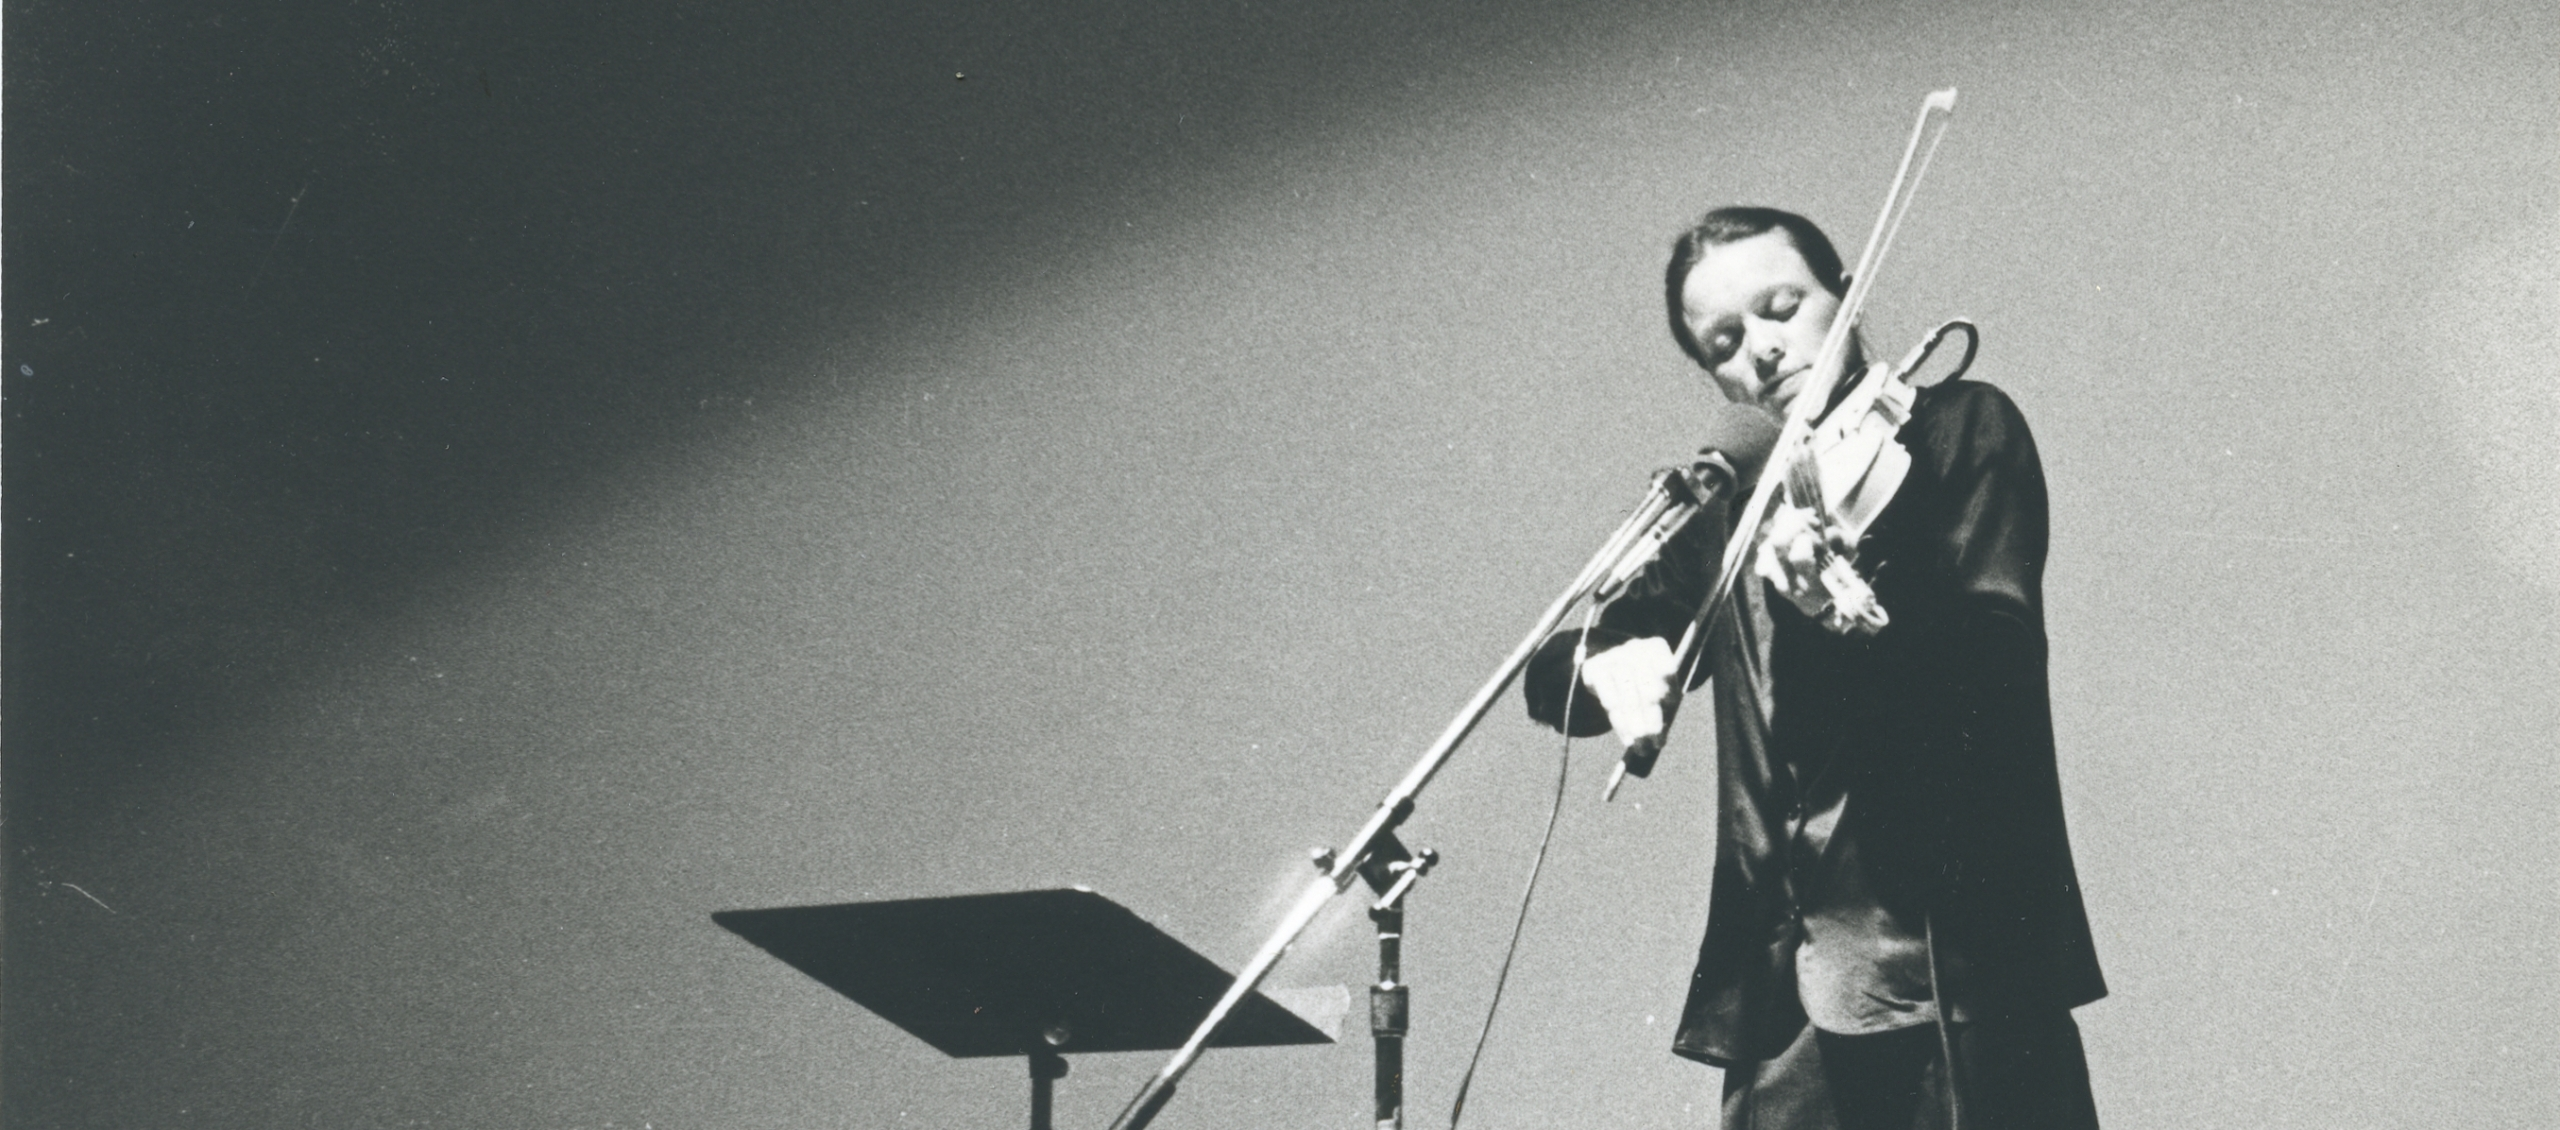 Laurie Anderson Performance at Northwestern University as part of exhibition by Donald Young Gallery, 1979